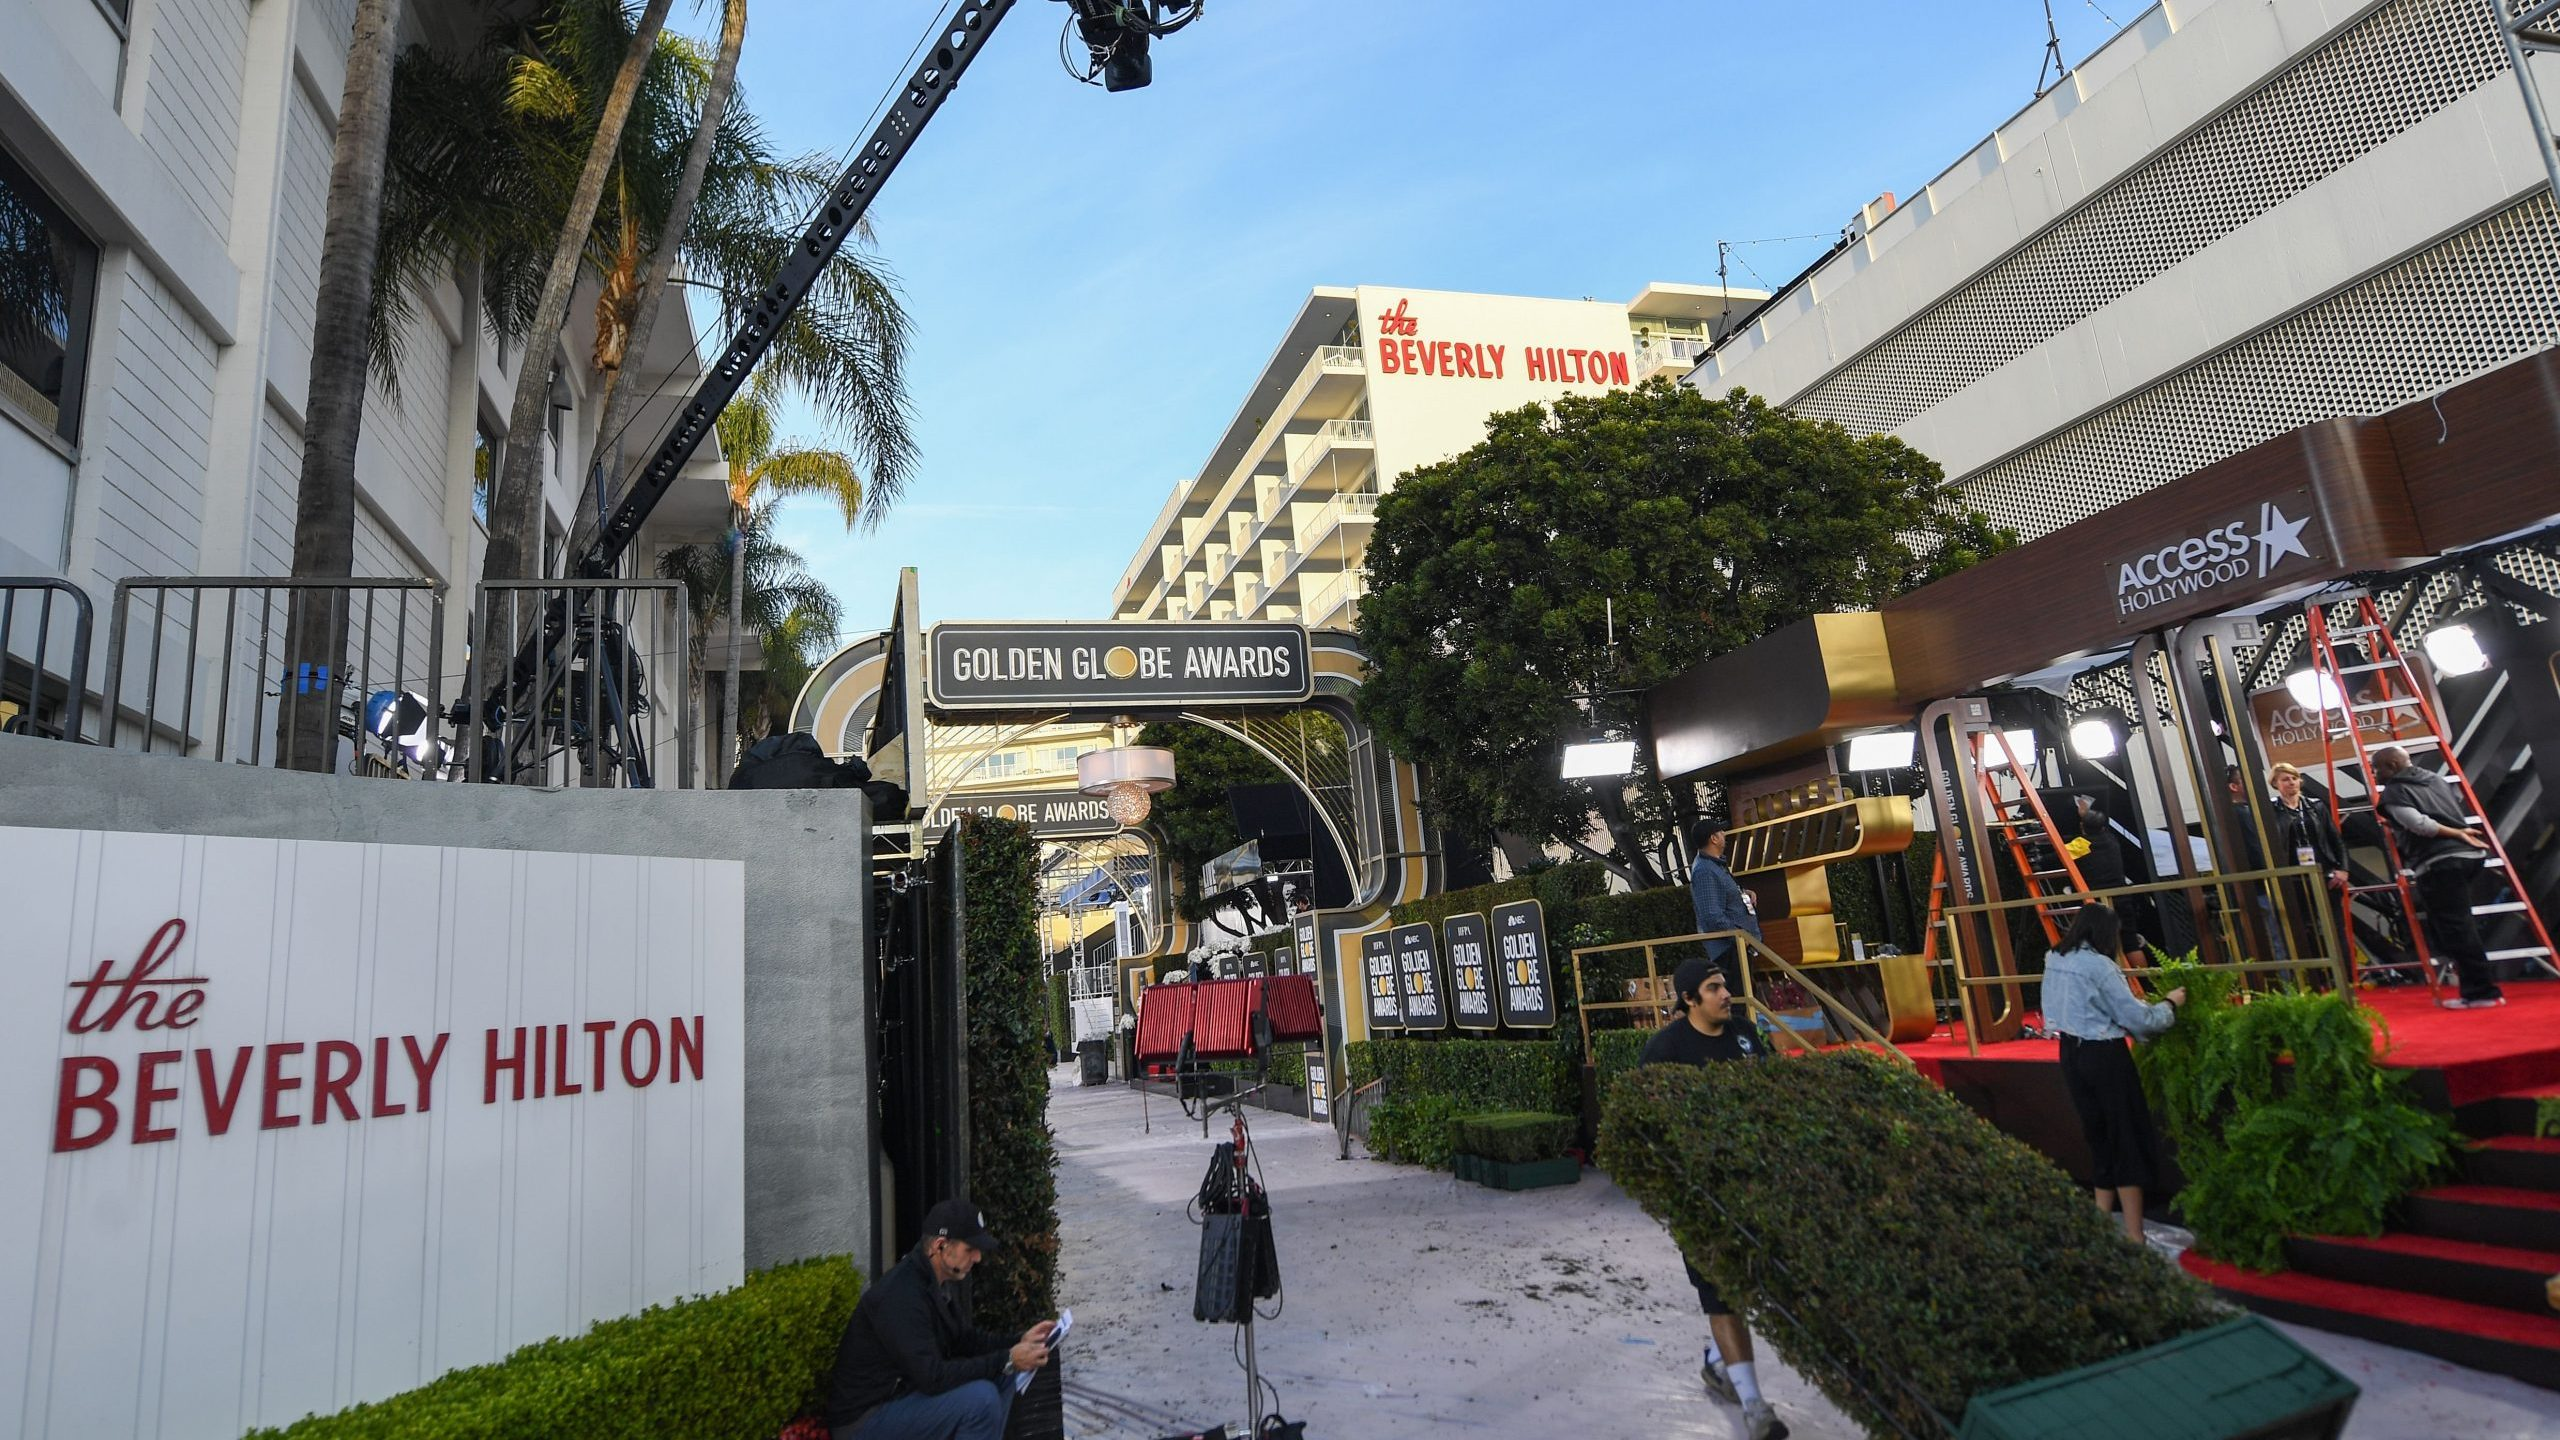 Crews set up the red carpet for the Golden Globes 2020 at The Beverly Hilton on Jan. 4, 2020. (Credit: VALERIE MACON/AFP via Getty Images)